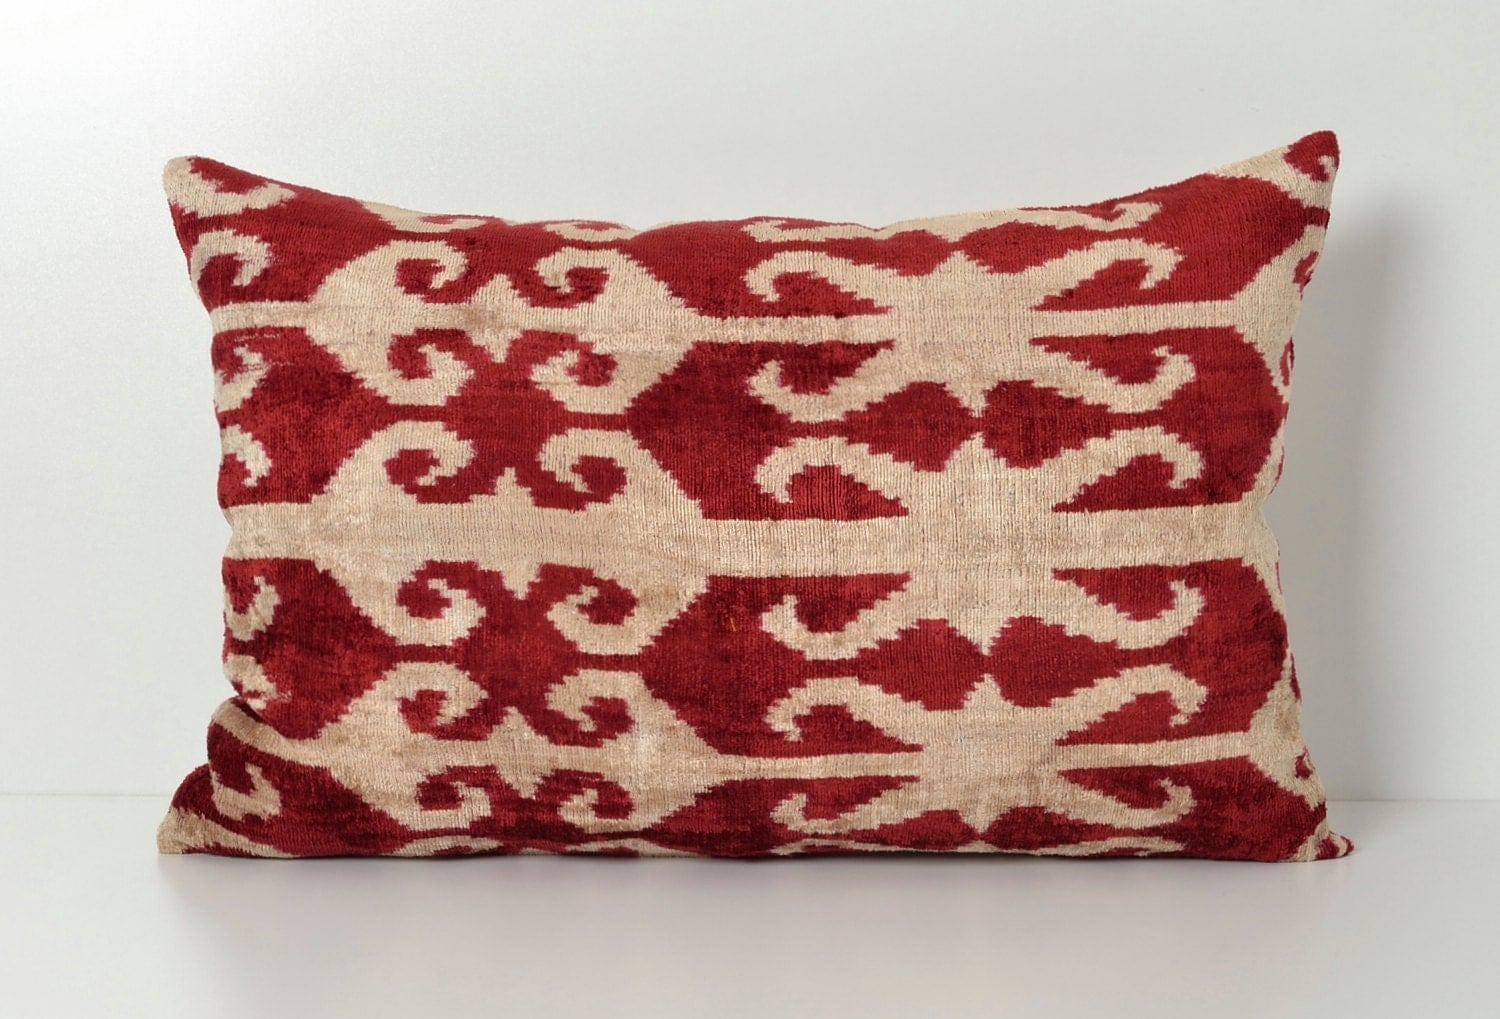 Decorative Pillows For Red Sofa : Red Ikat Pillow Ikat Lumbar Pillow Red Decorative Pillows